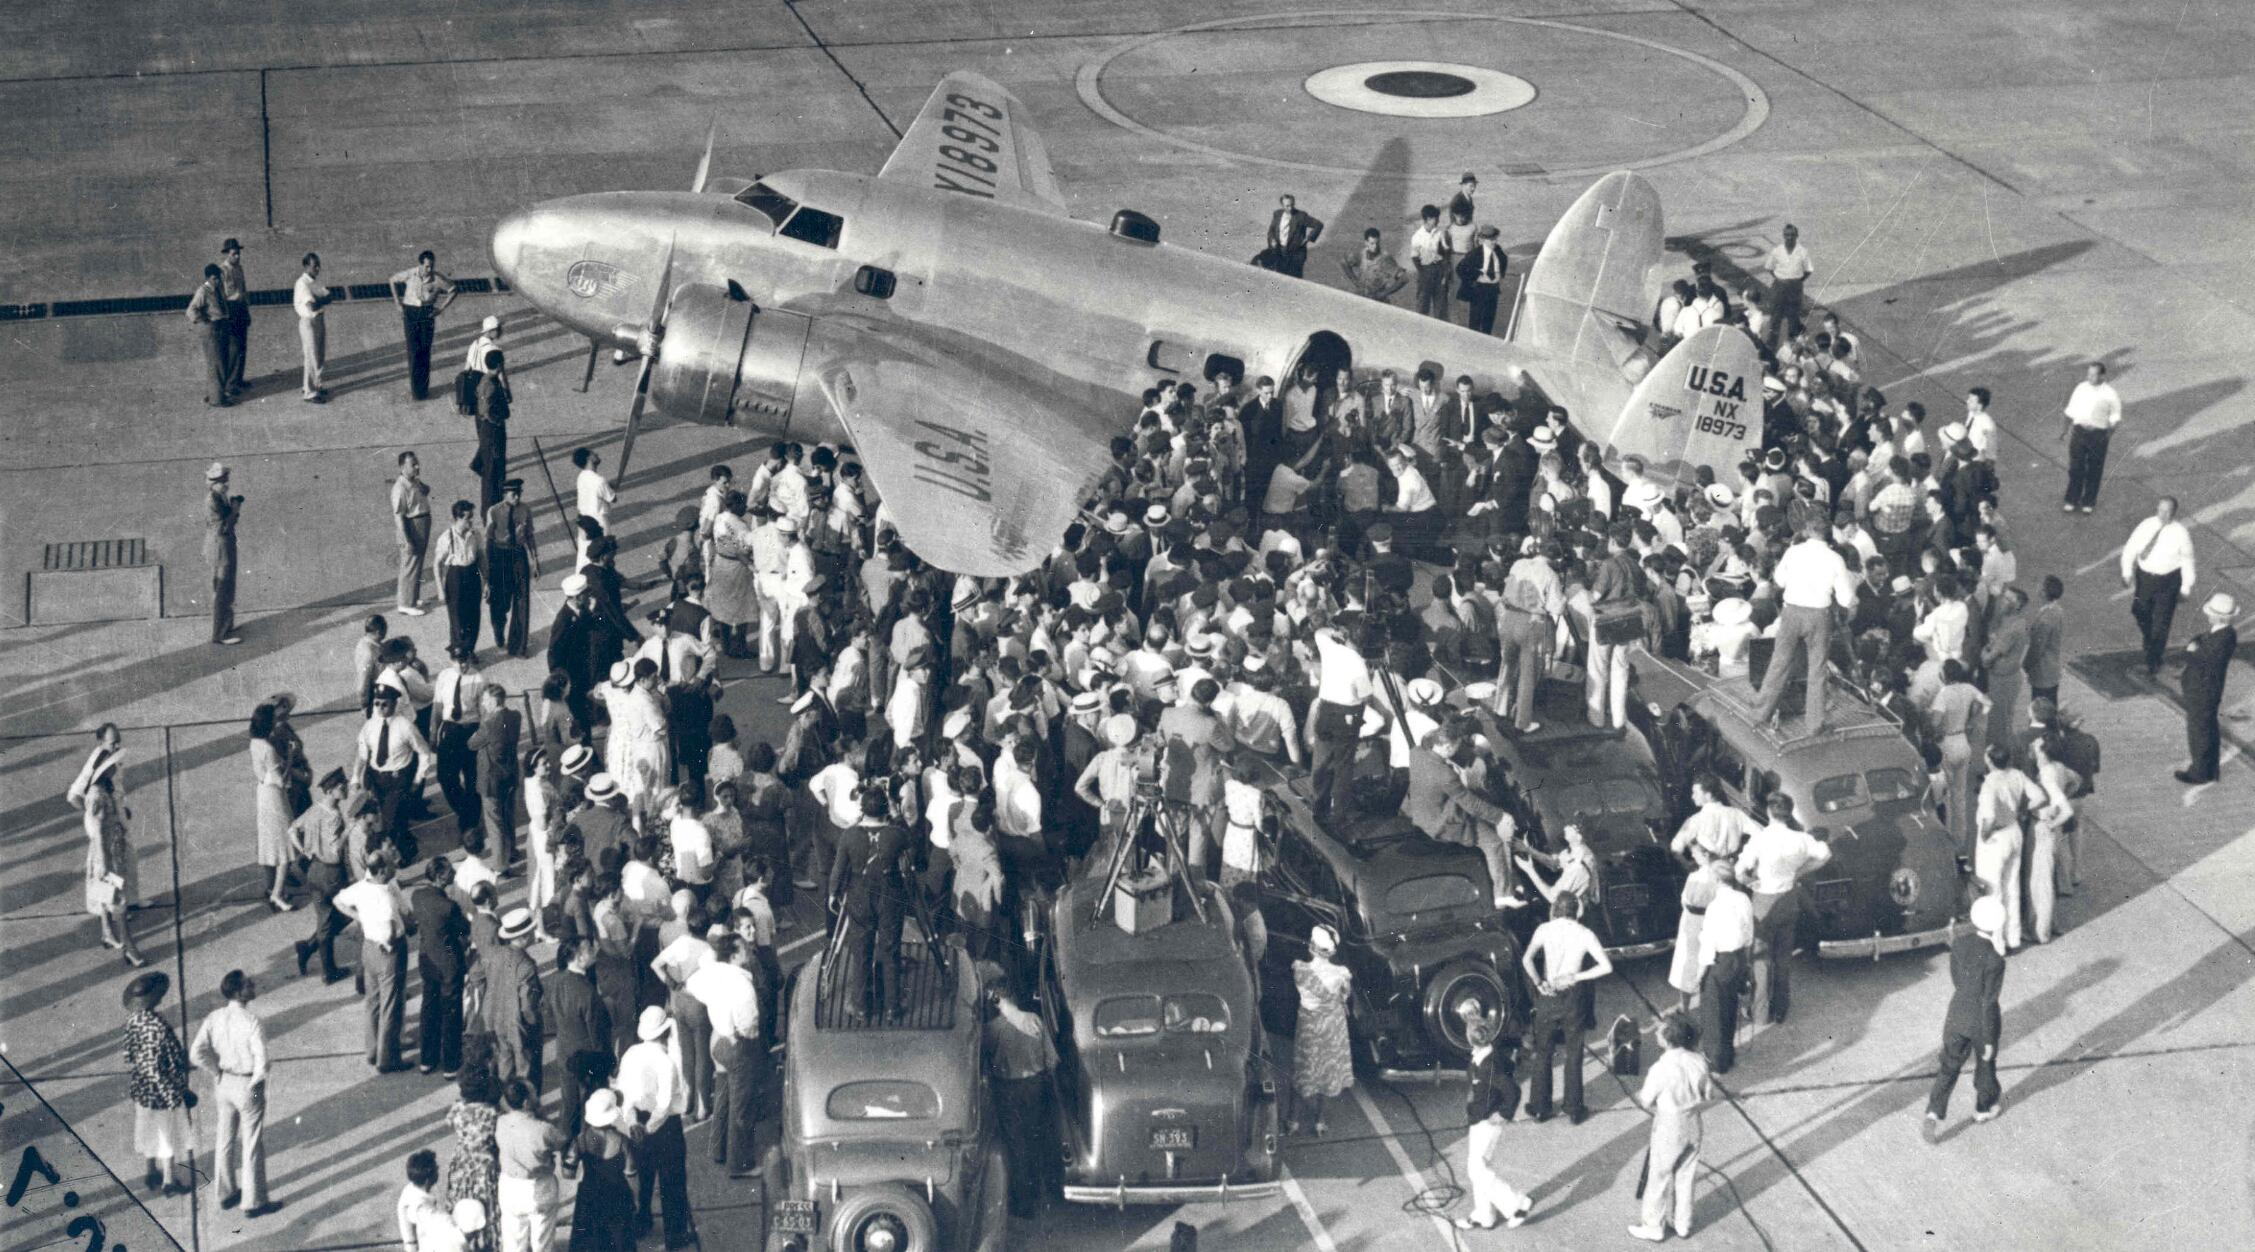 Floyd Bennett Field on Long Island, New York, was a site where one record after another was set and broken in rapid succession during the golden era of aviation between the two world wars. In this photograph, Hughes and his crew prepare to set out for Paris from the Field on the first leg of their tour. Their 91-hour adventure generated publicity for the World's Fair, set to open the following year -- and made Howard Hughes an international celebrity.